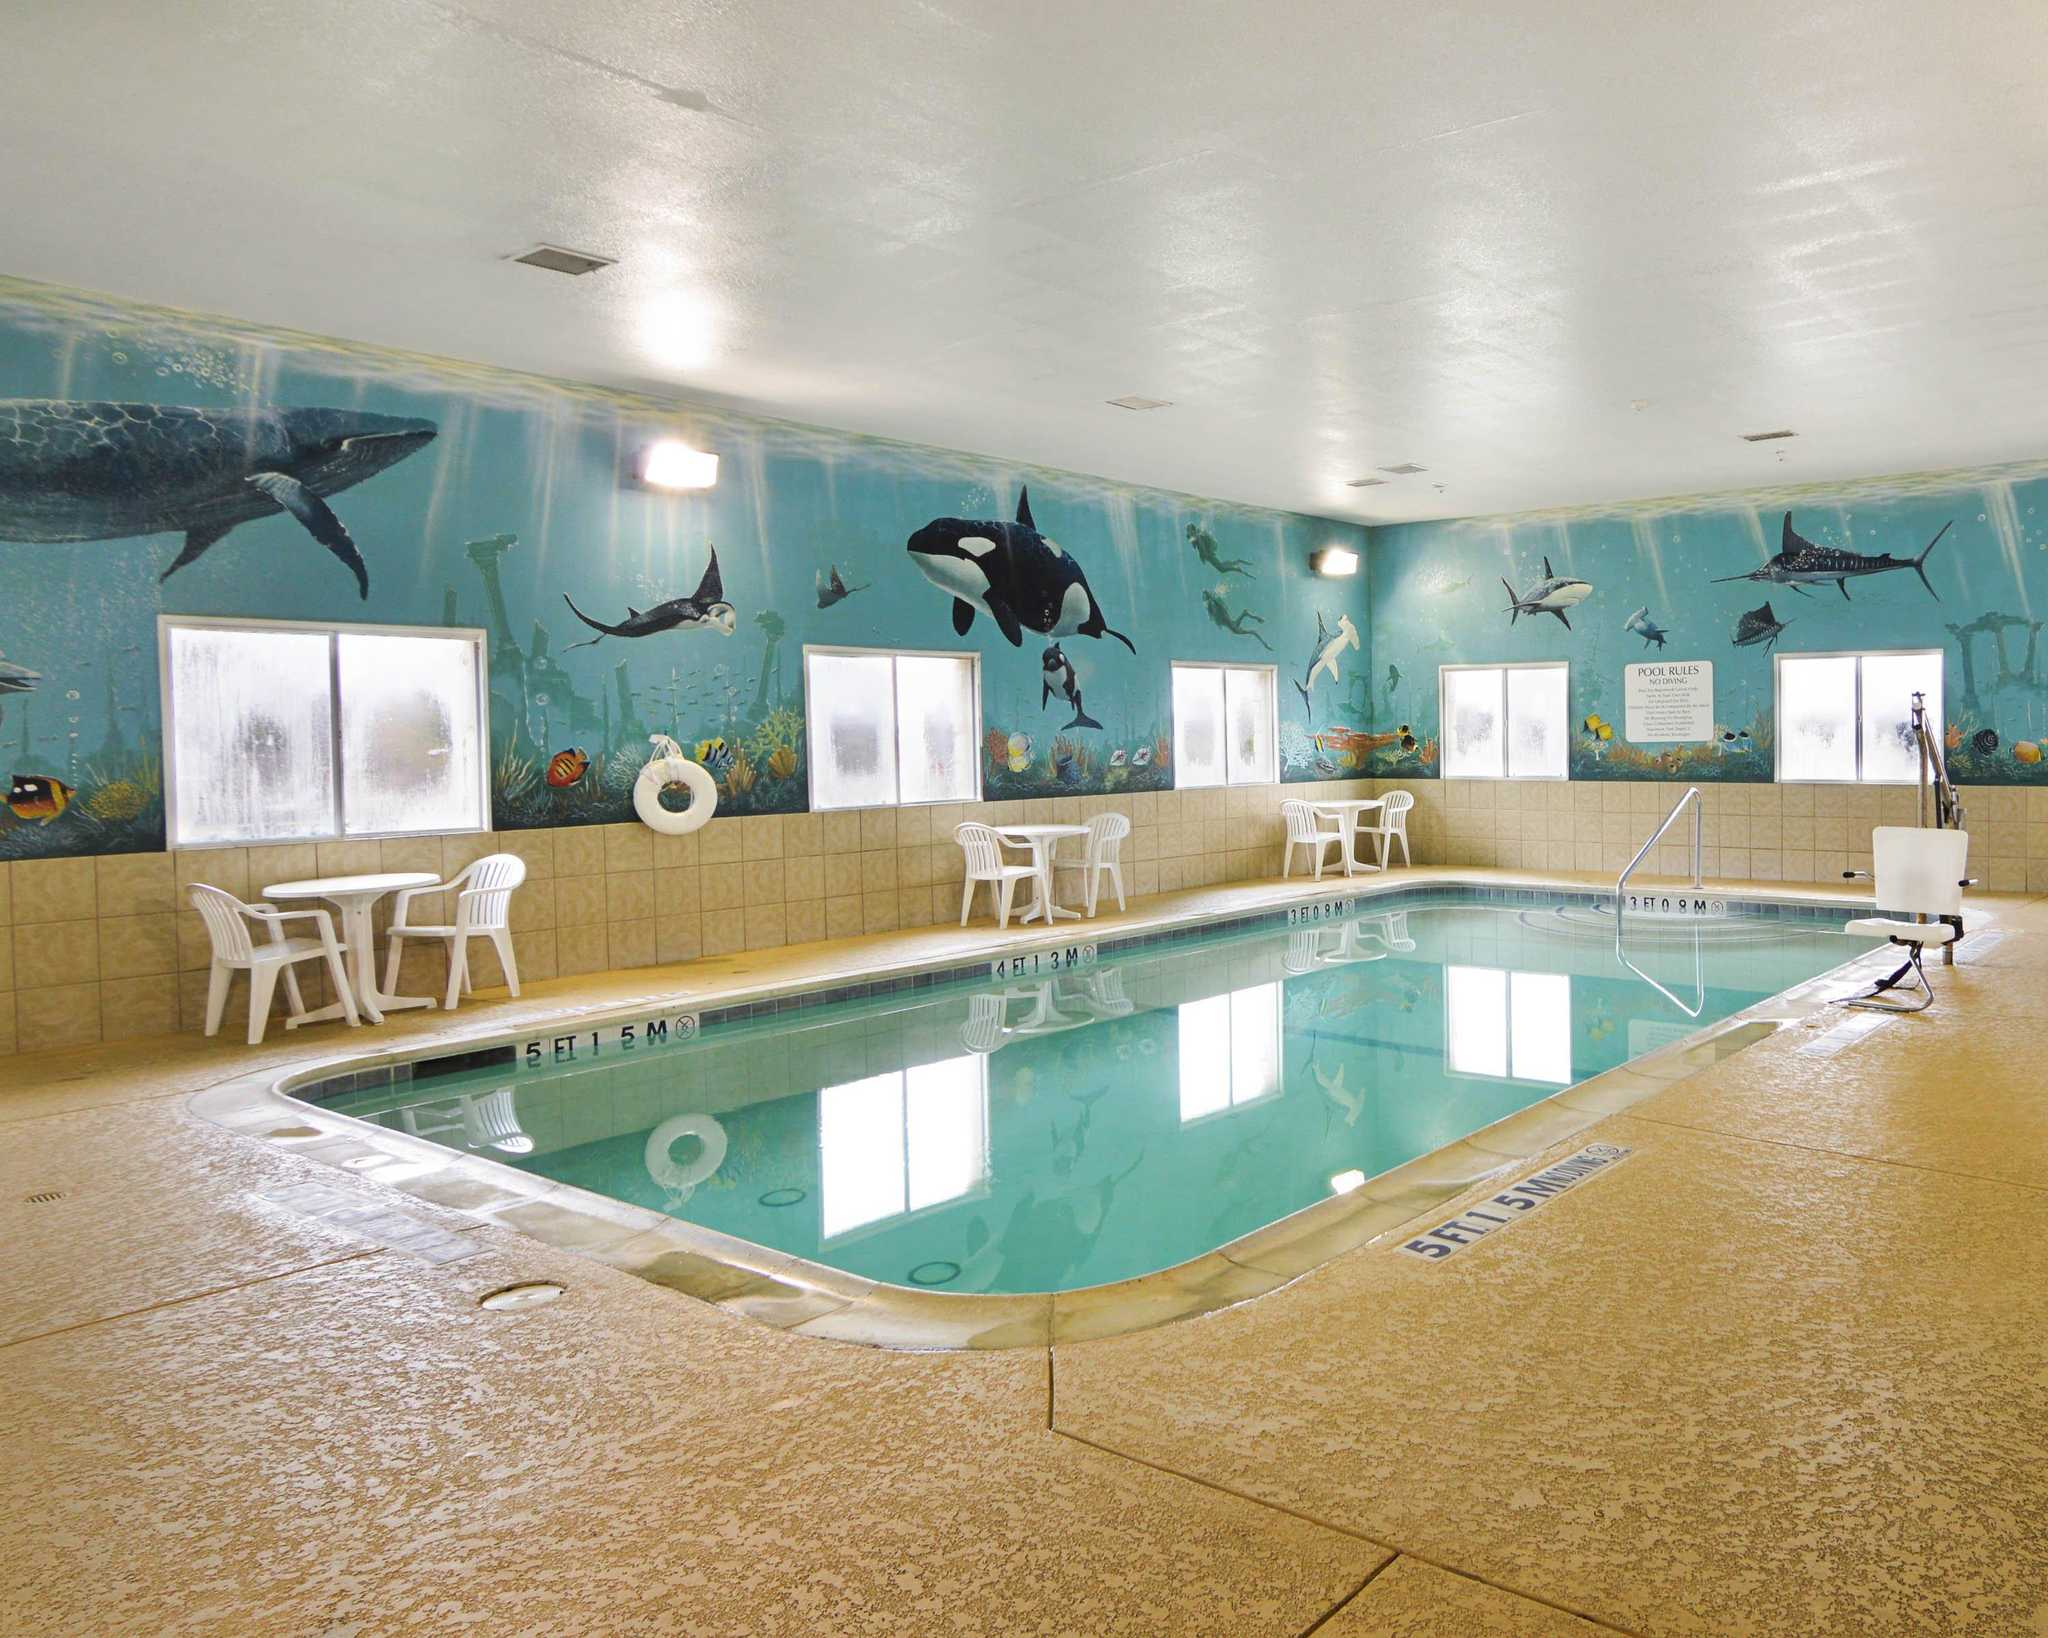 Comfort Suites Coupons Near Me In Grand Prairie 8coupons